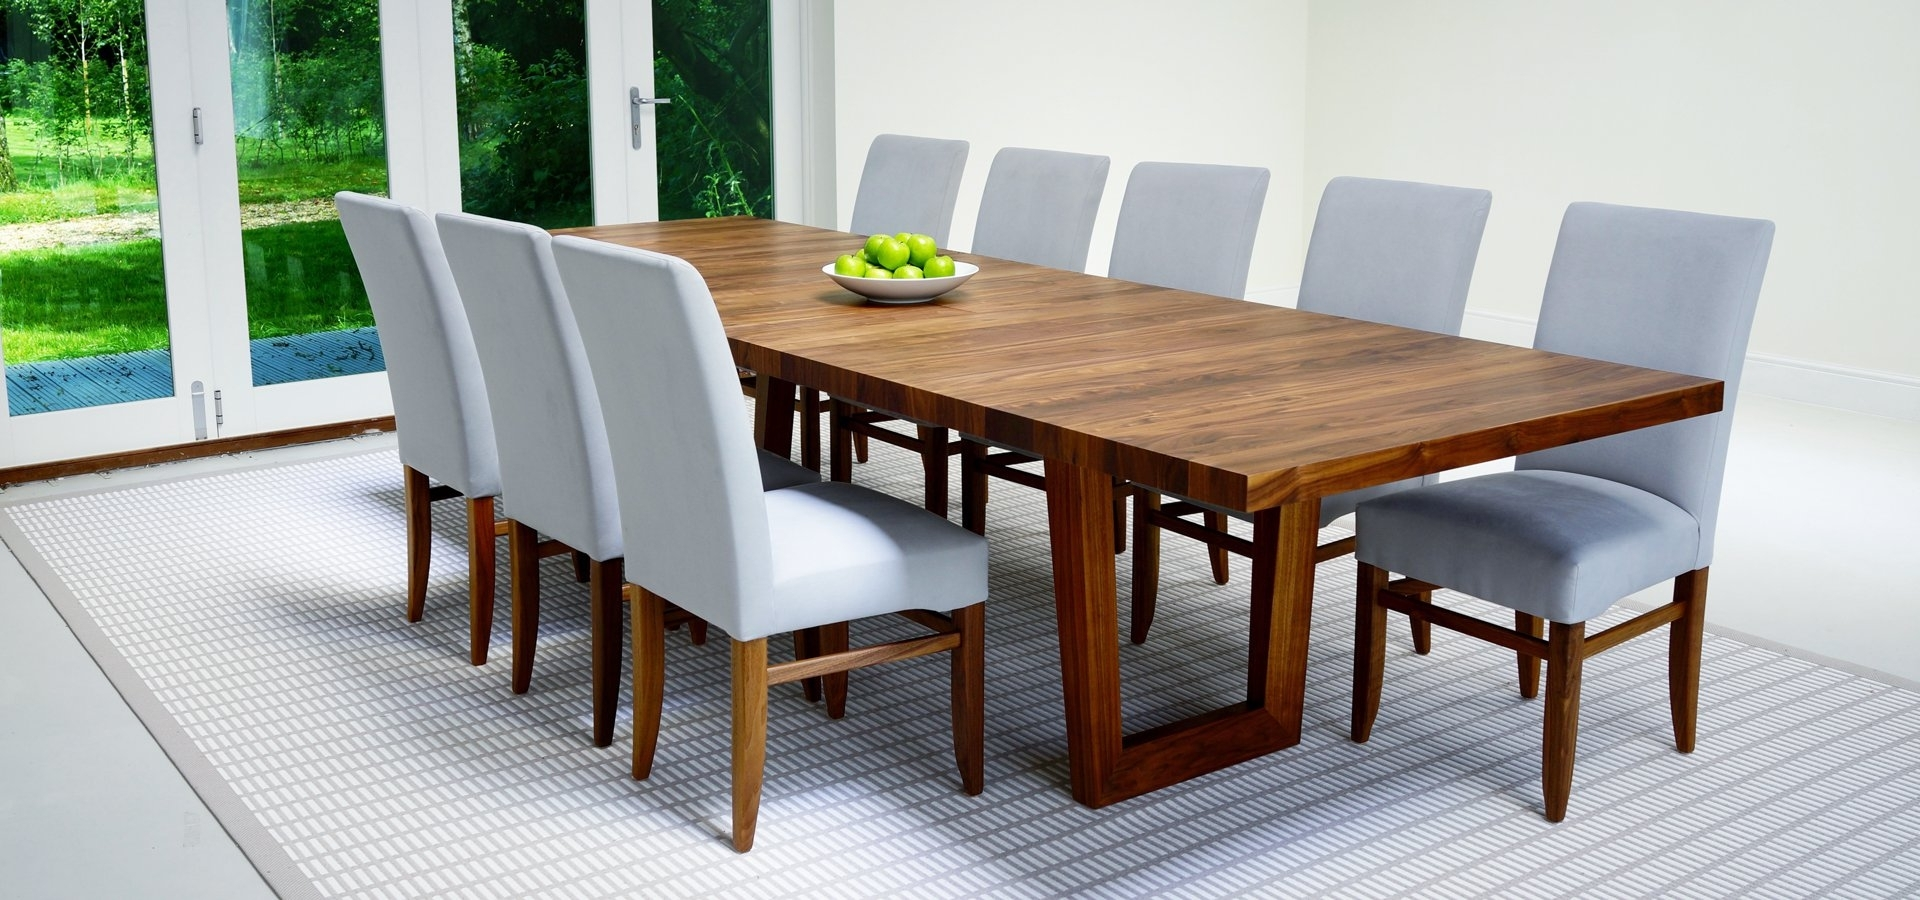 Contemporary Extending Dining Tables Intended For Well Known Modern Extendable Dining Table Set – Castrophotos (View 5 of 25)